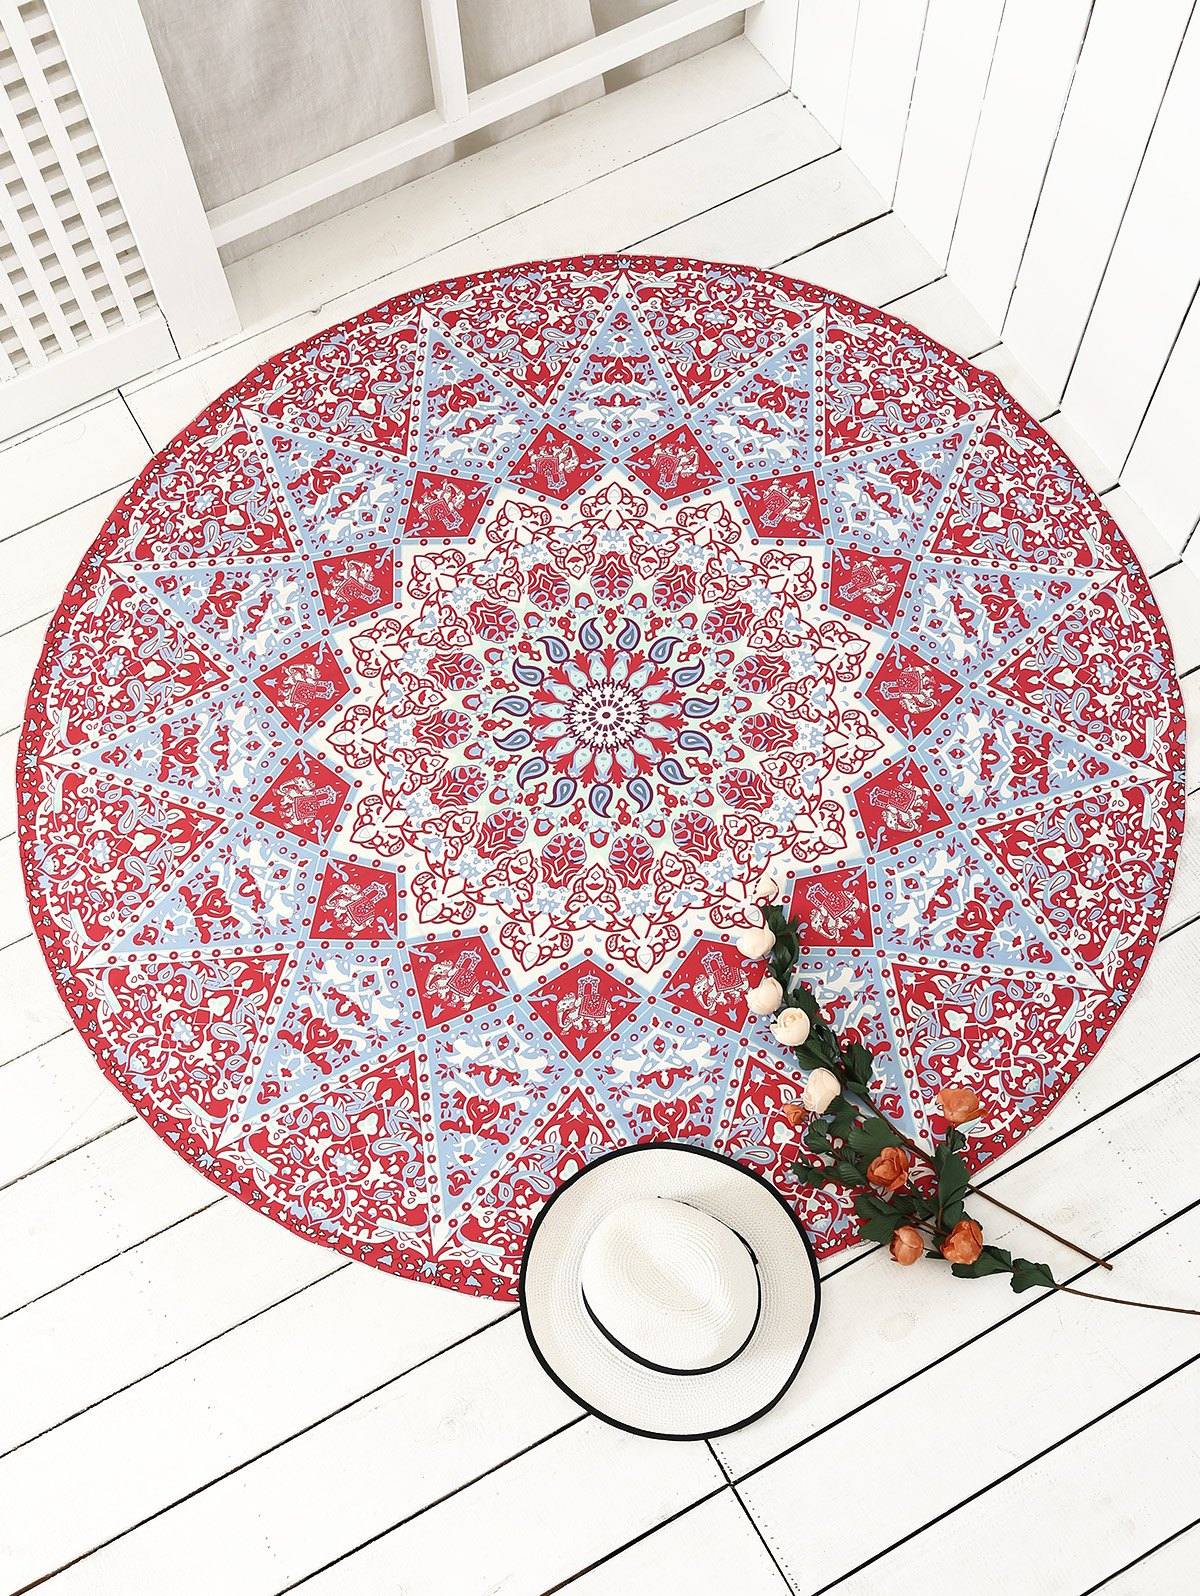 plage jet serviette tapis rond avec franges motifs style mandala indien couleur rouge zaful. Black Bedroom Furniture Sets. Home Design Ideas